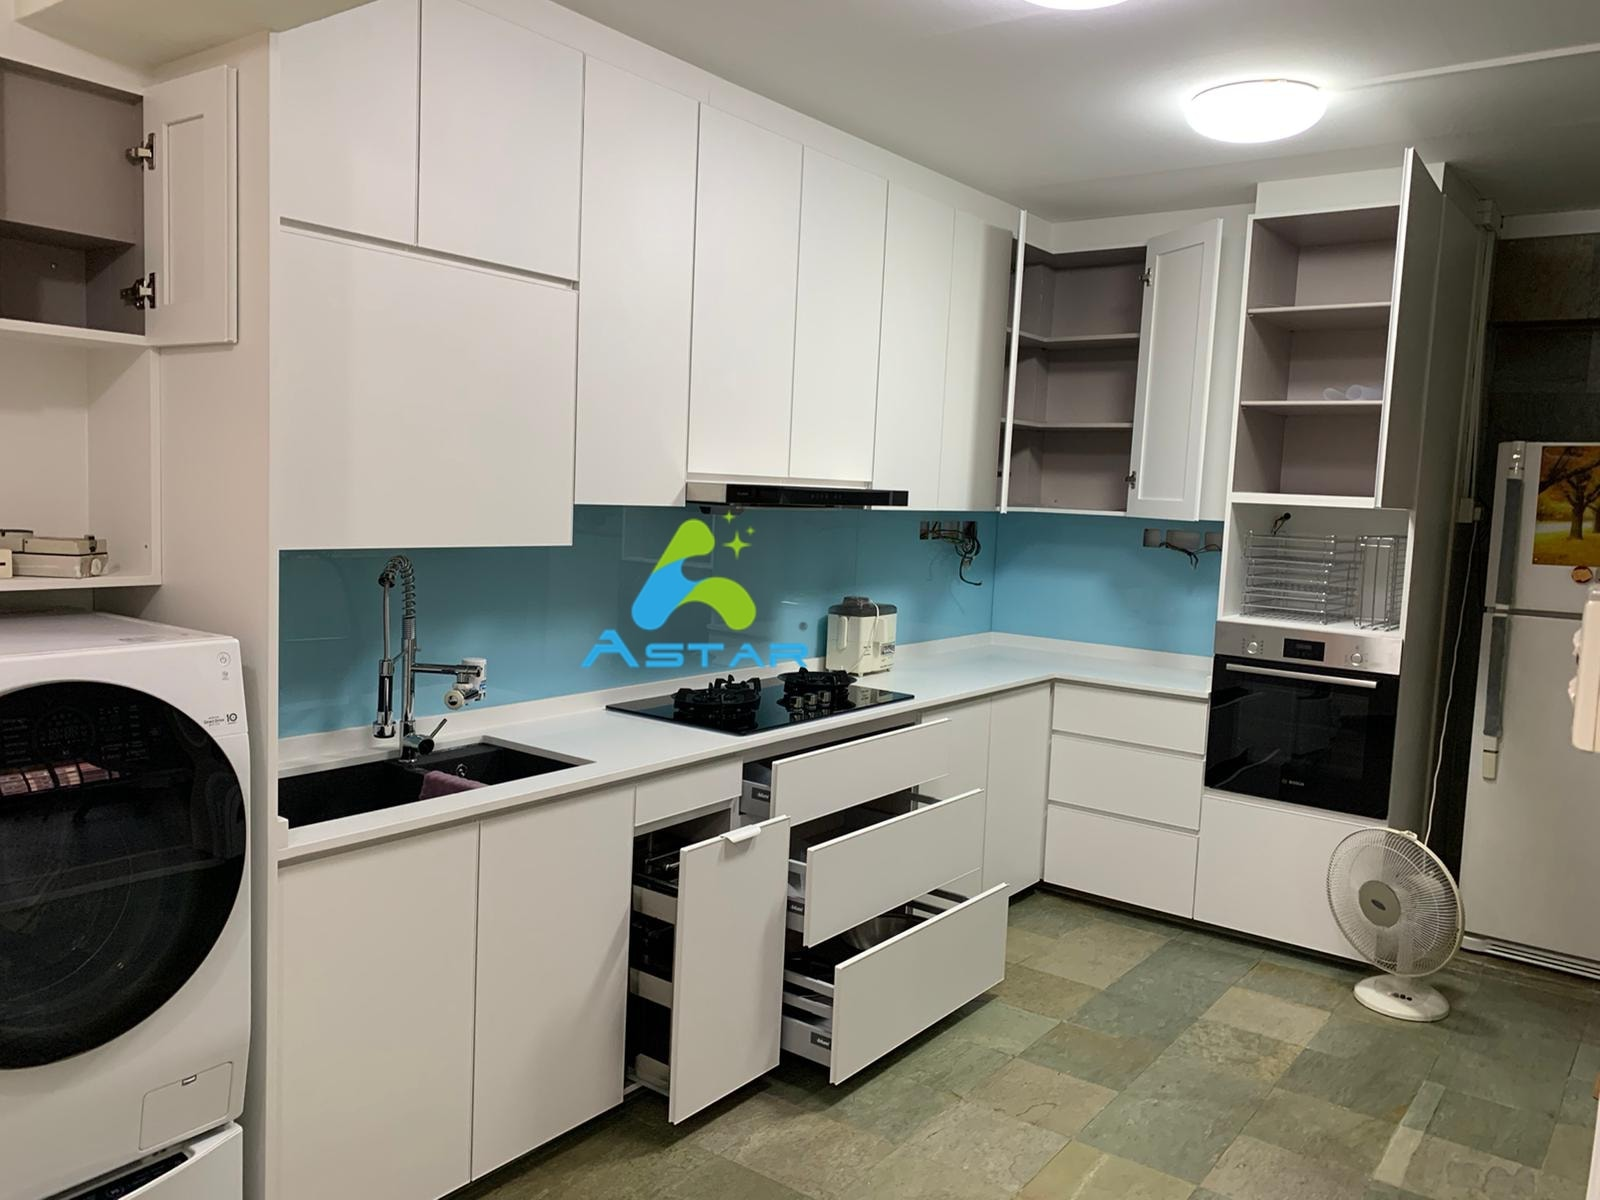 a star furnishing projects Blk 497F Tampines St 45 S524497 4